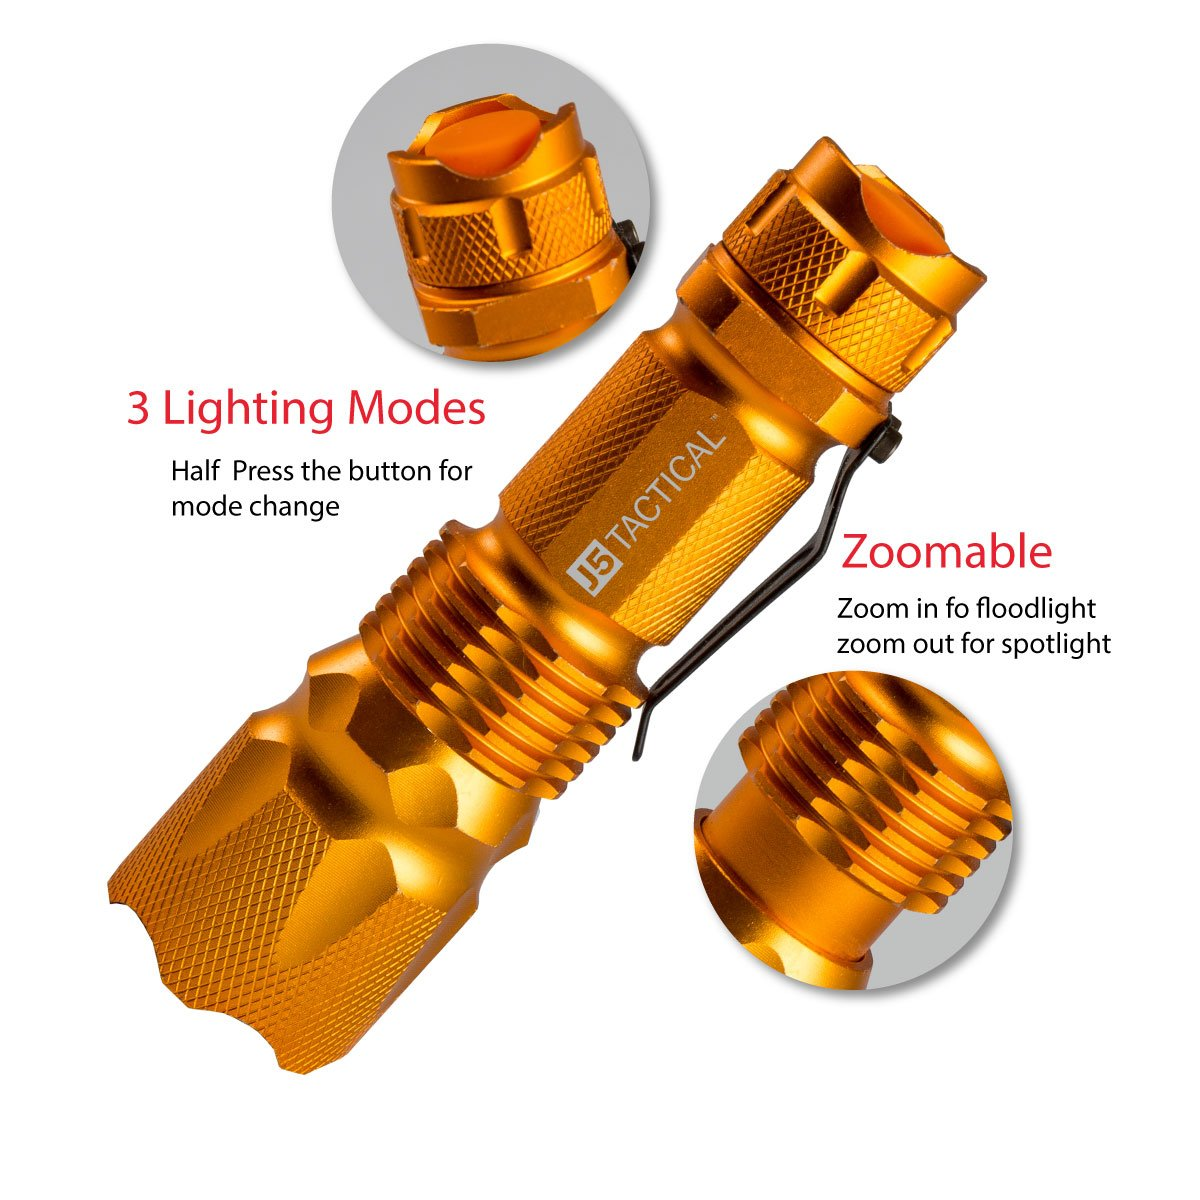 The Original 300 lm Ultra Bright LED Mini 3 Mode Flashlight Hunter Orange/… J5 Tactical J5 V1 Pro Hunter Orange Tactical Flashlight